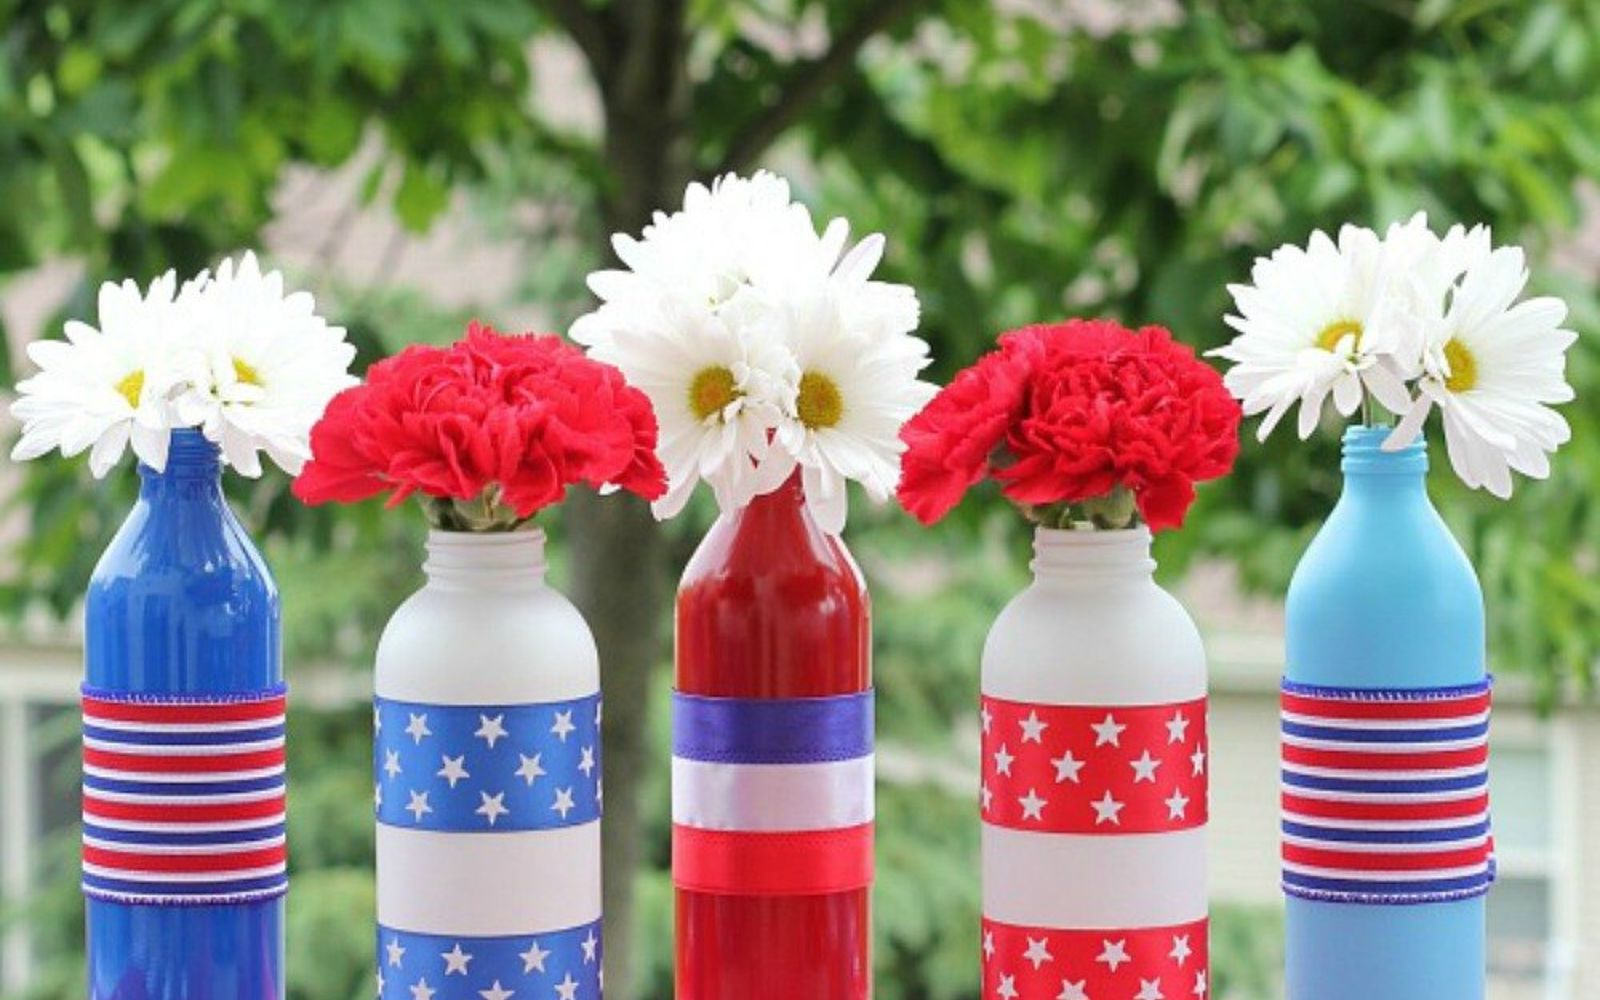 s 13 july 4th decorations that will blow your bbq guests away, crafts, outdoor living, seasonal holiday decor, Upcycle bottles into bursting flower displays